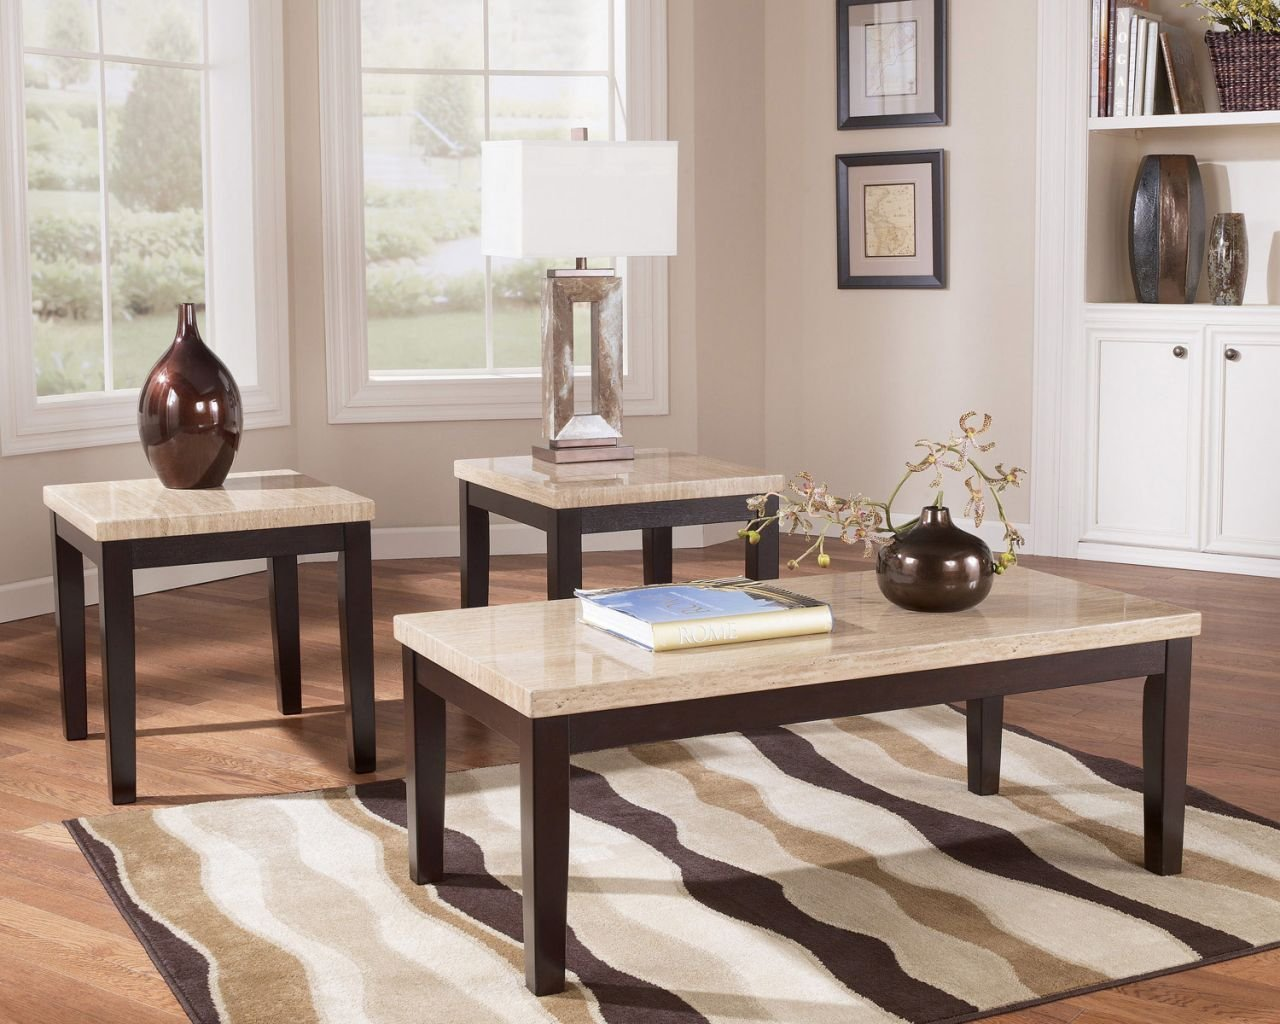 Amazon.com: Faux Travertine 3 In 1 Occasional Table Set: Kitchen U0026 Dining